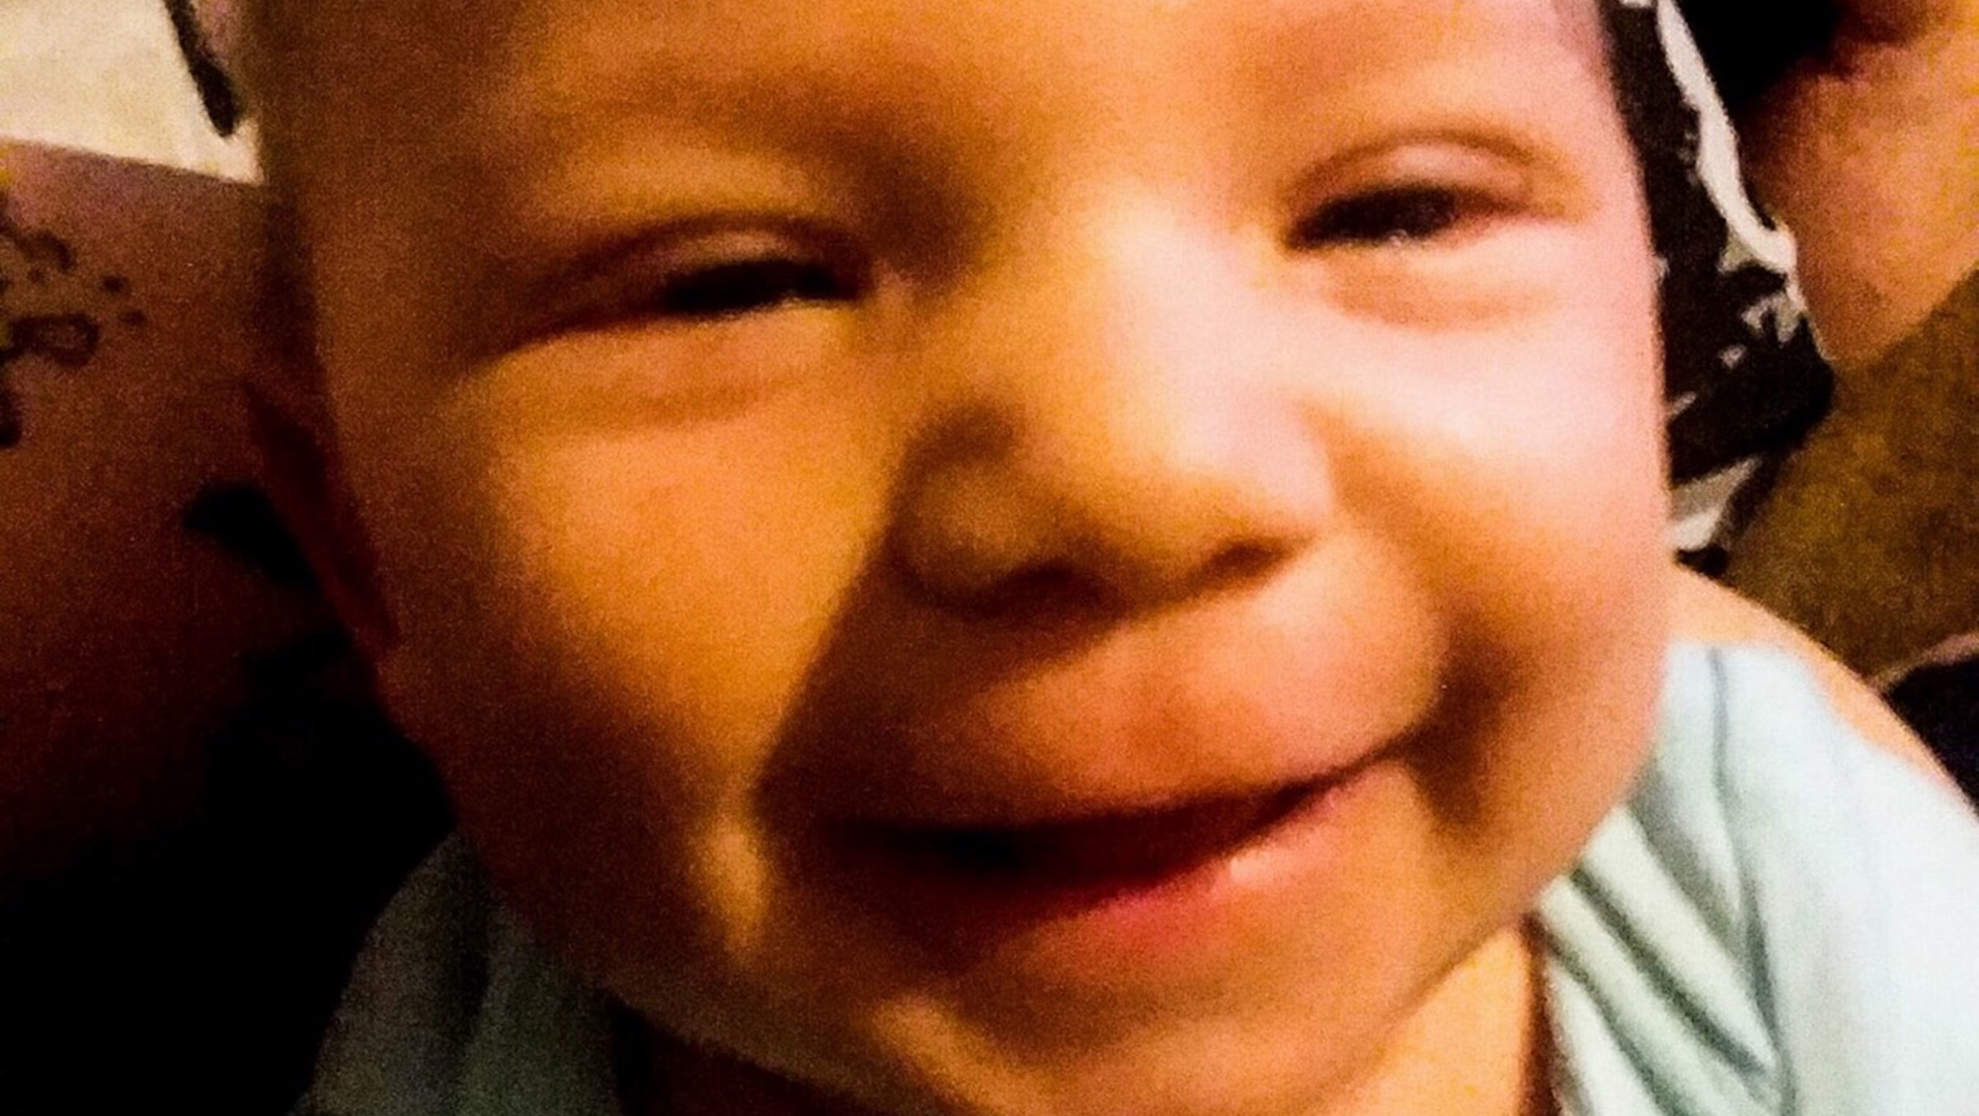 4-Month-Old Dies of Meningitis Likely Contracted from Unvaccinated Person: 'This Is a Nightmare'